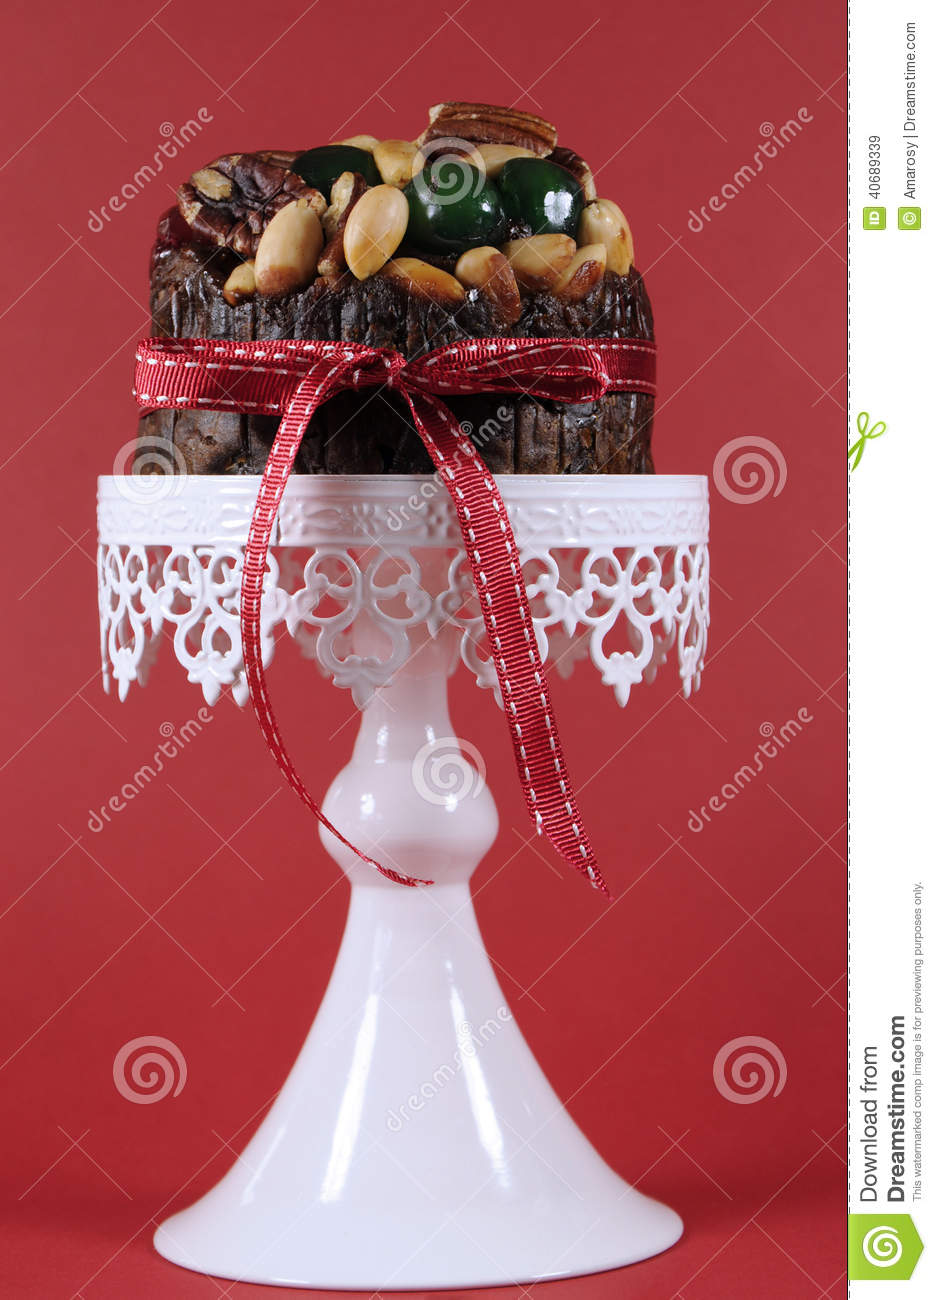 Nuts On Christmas Cake For Decoration : Festive Christmas Food, Fruit Cake With Glace Cherries And ...